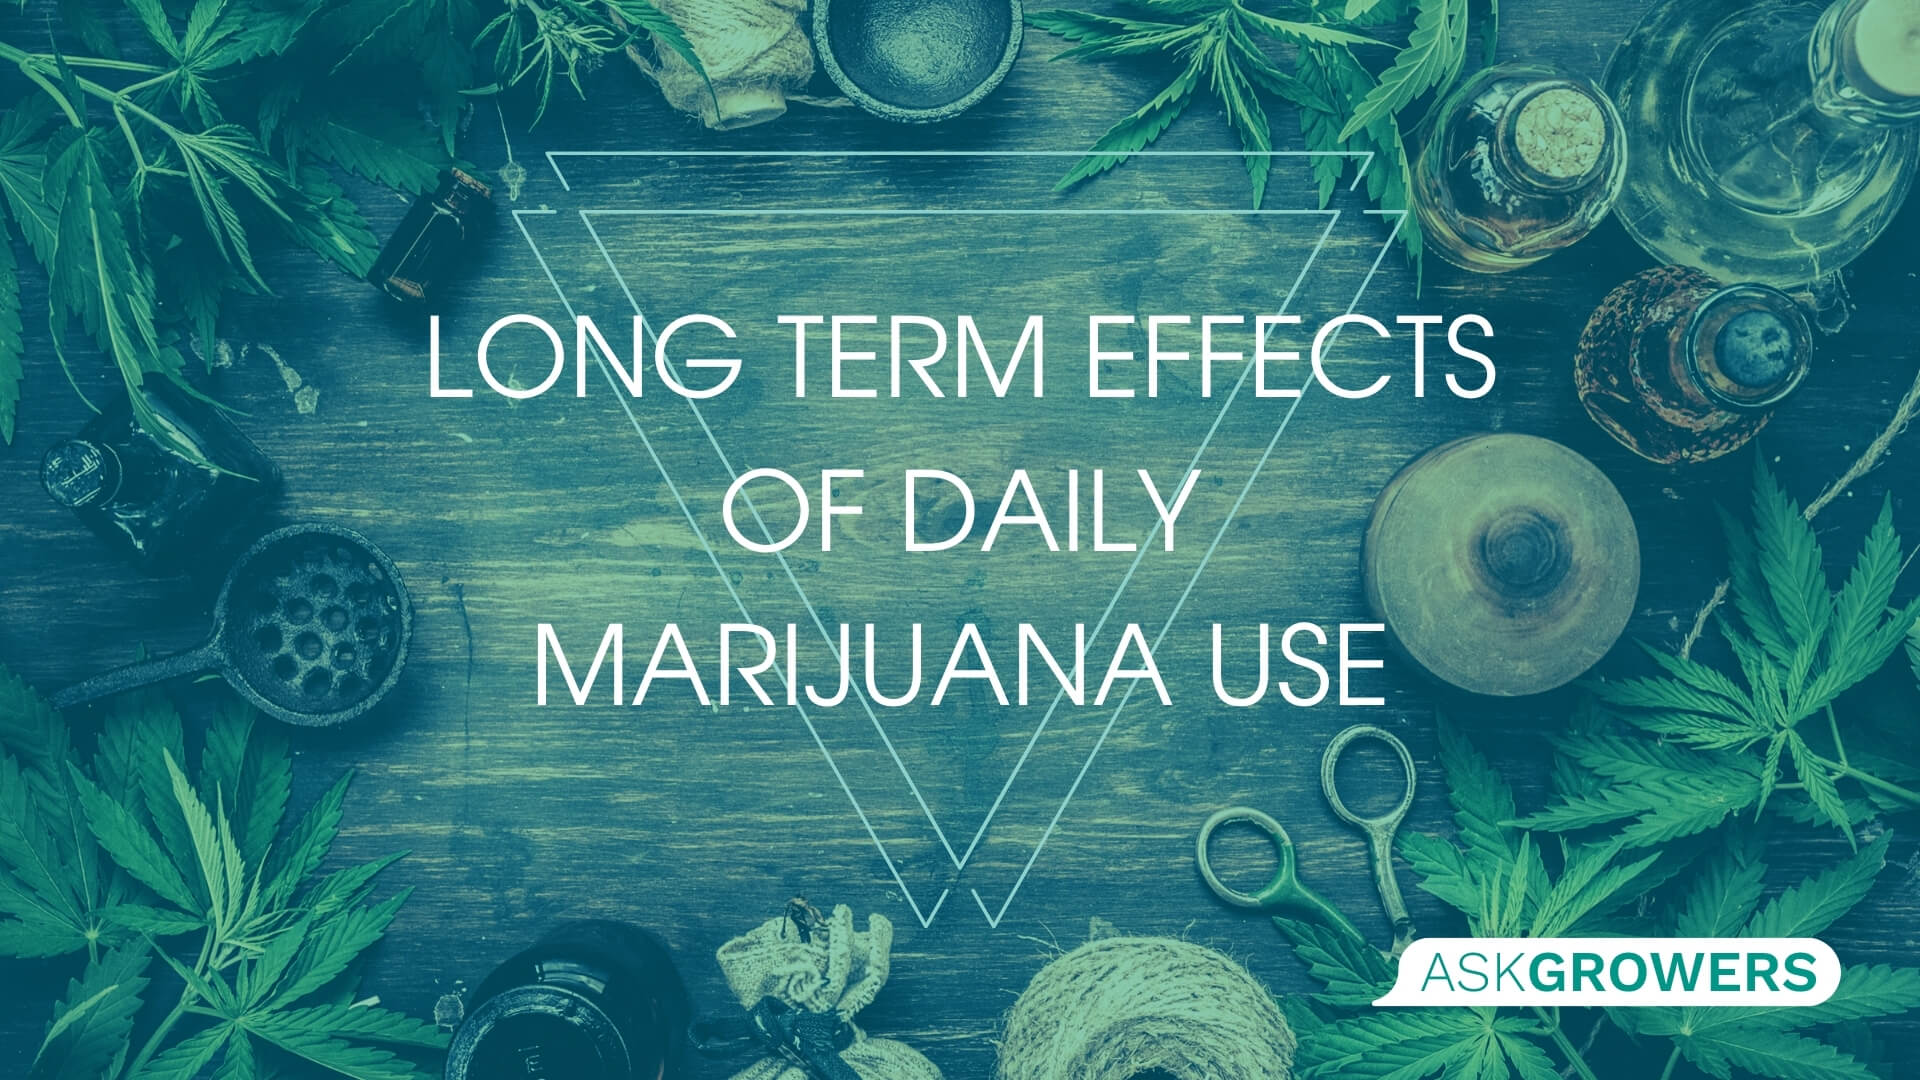 Long Term Effects of Daily Marijuana Use, AskGrowers